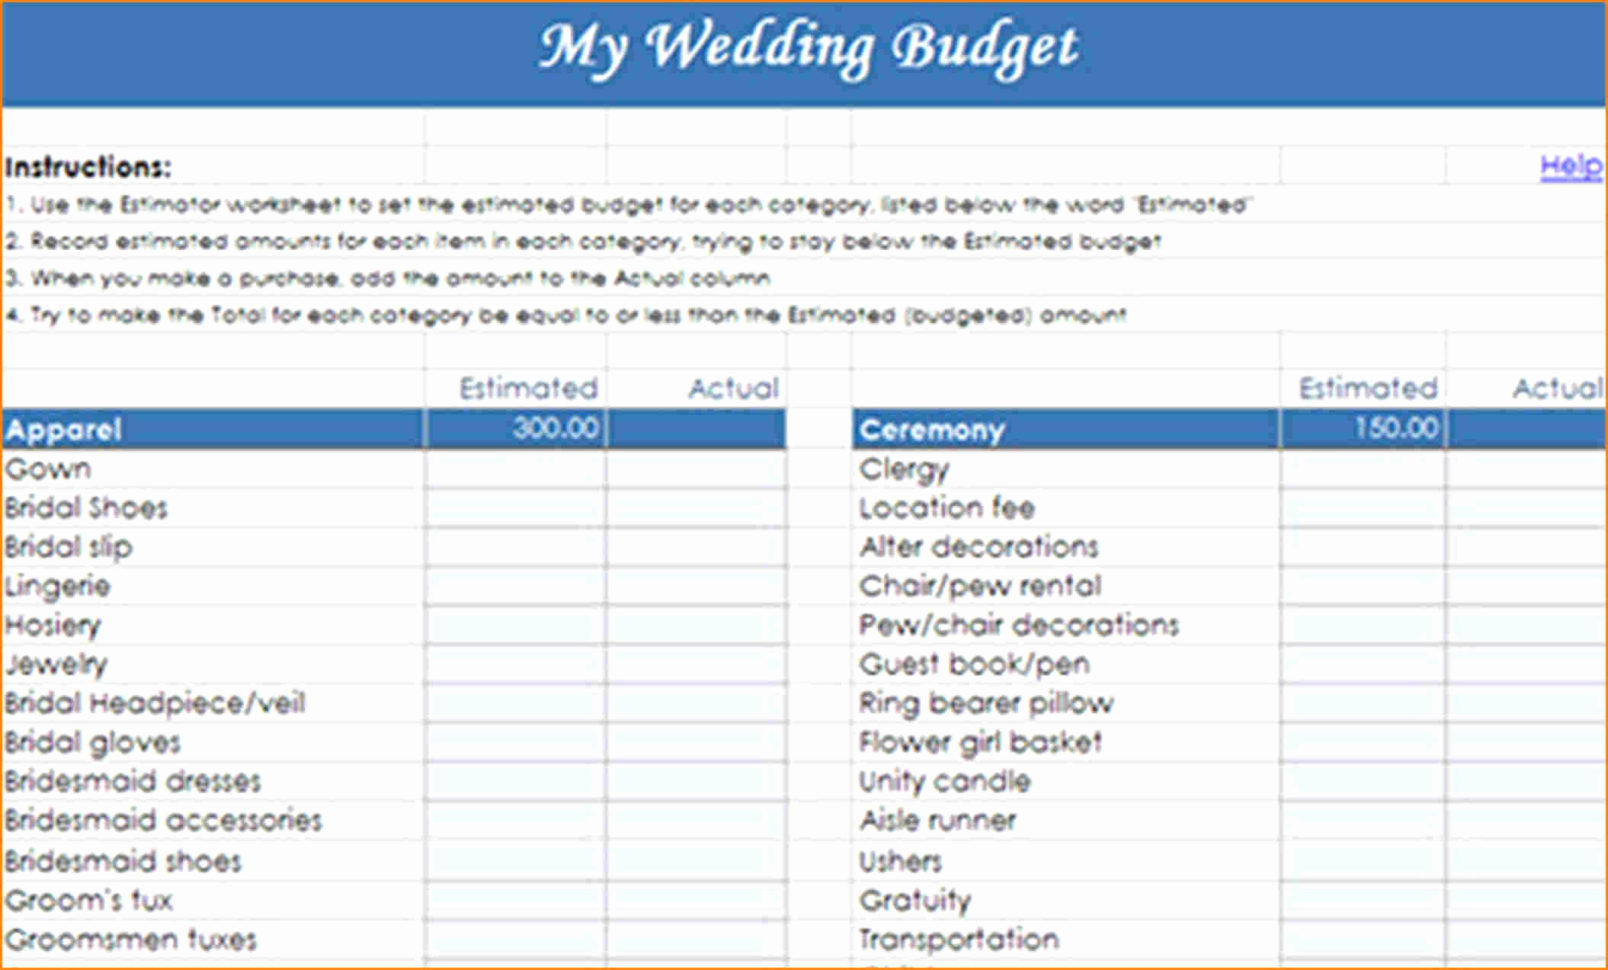 Wedding Budget Spreadsheet For Mac How To Make Your Own